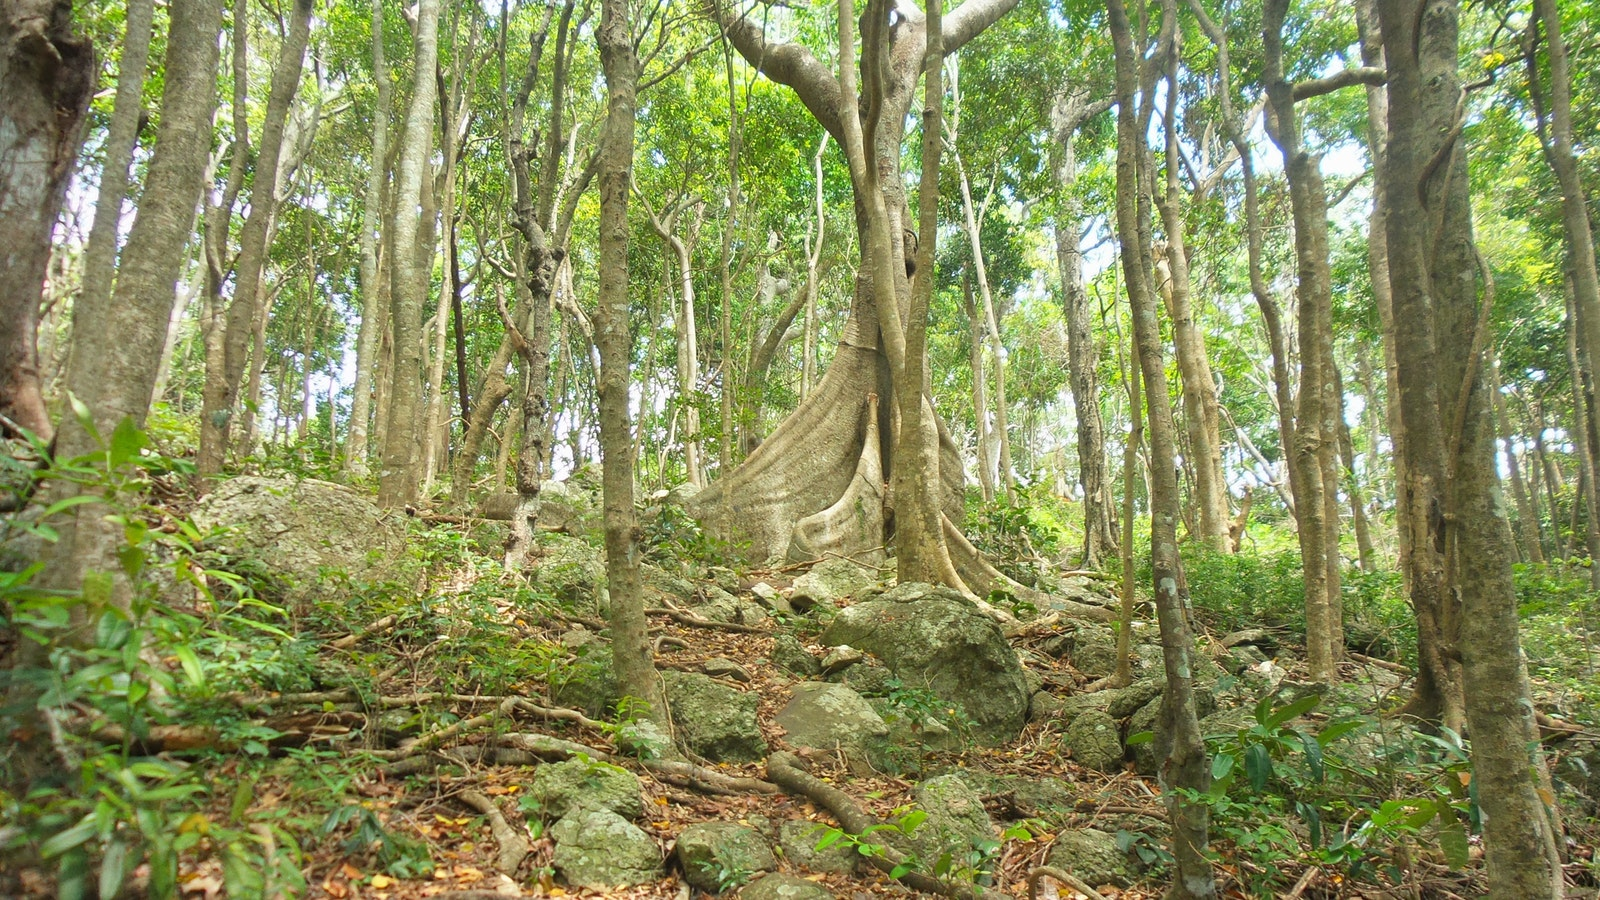 Buttress root, Rainforest circuit, Burleigh Head